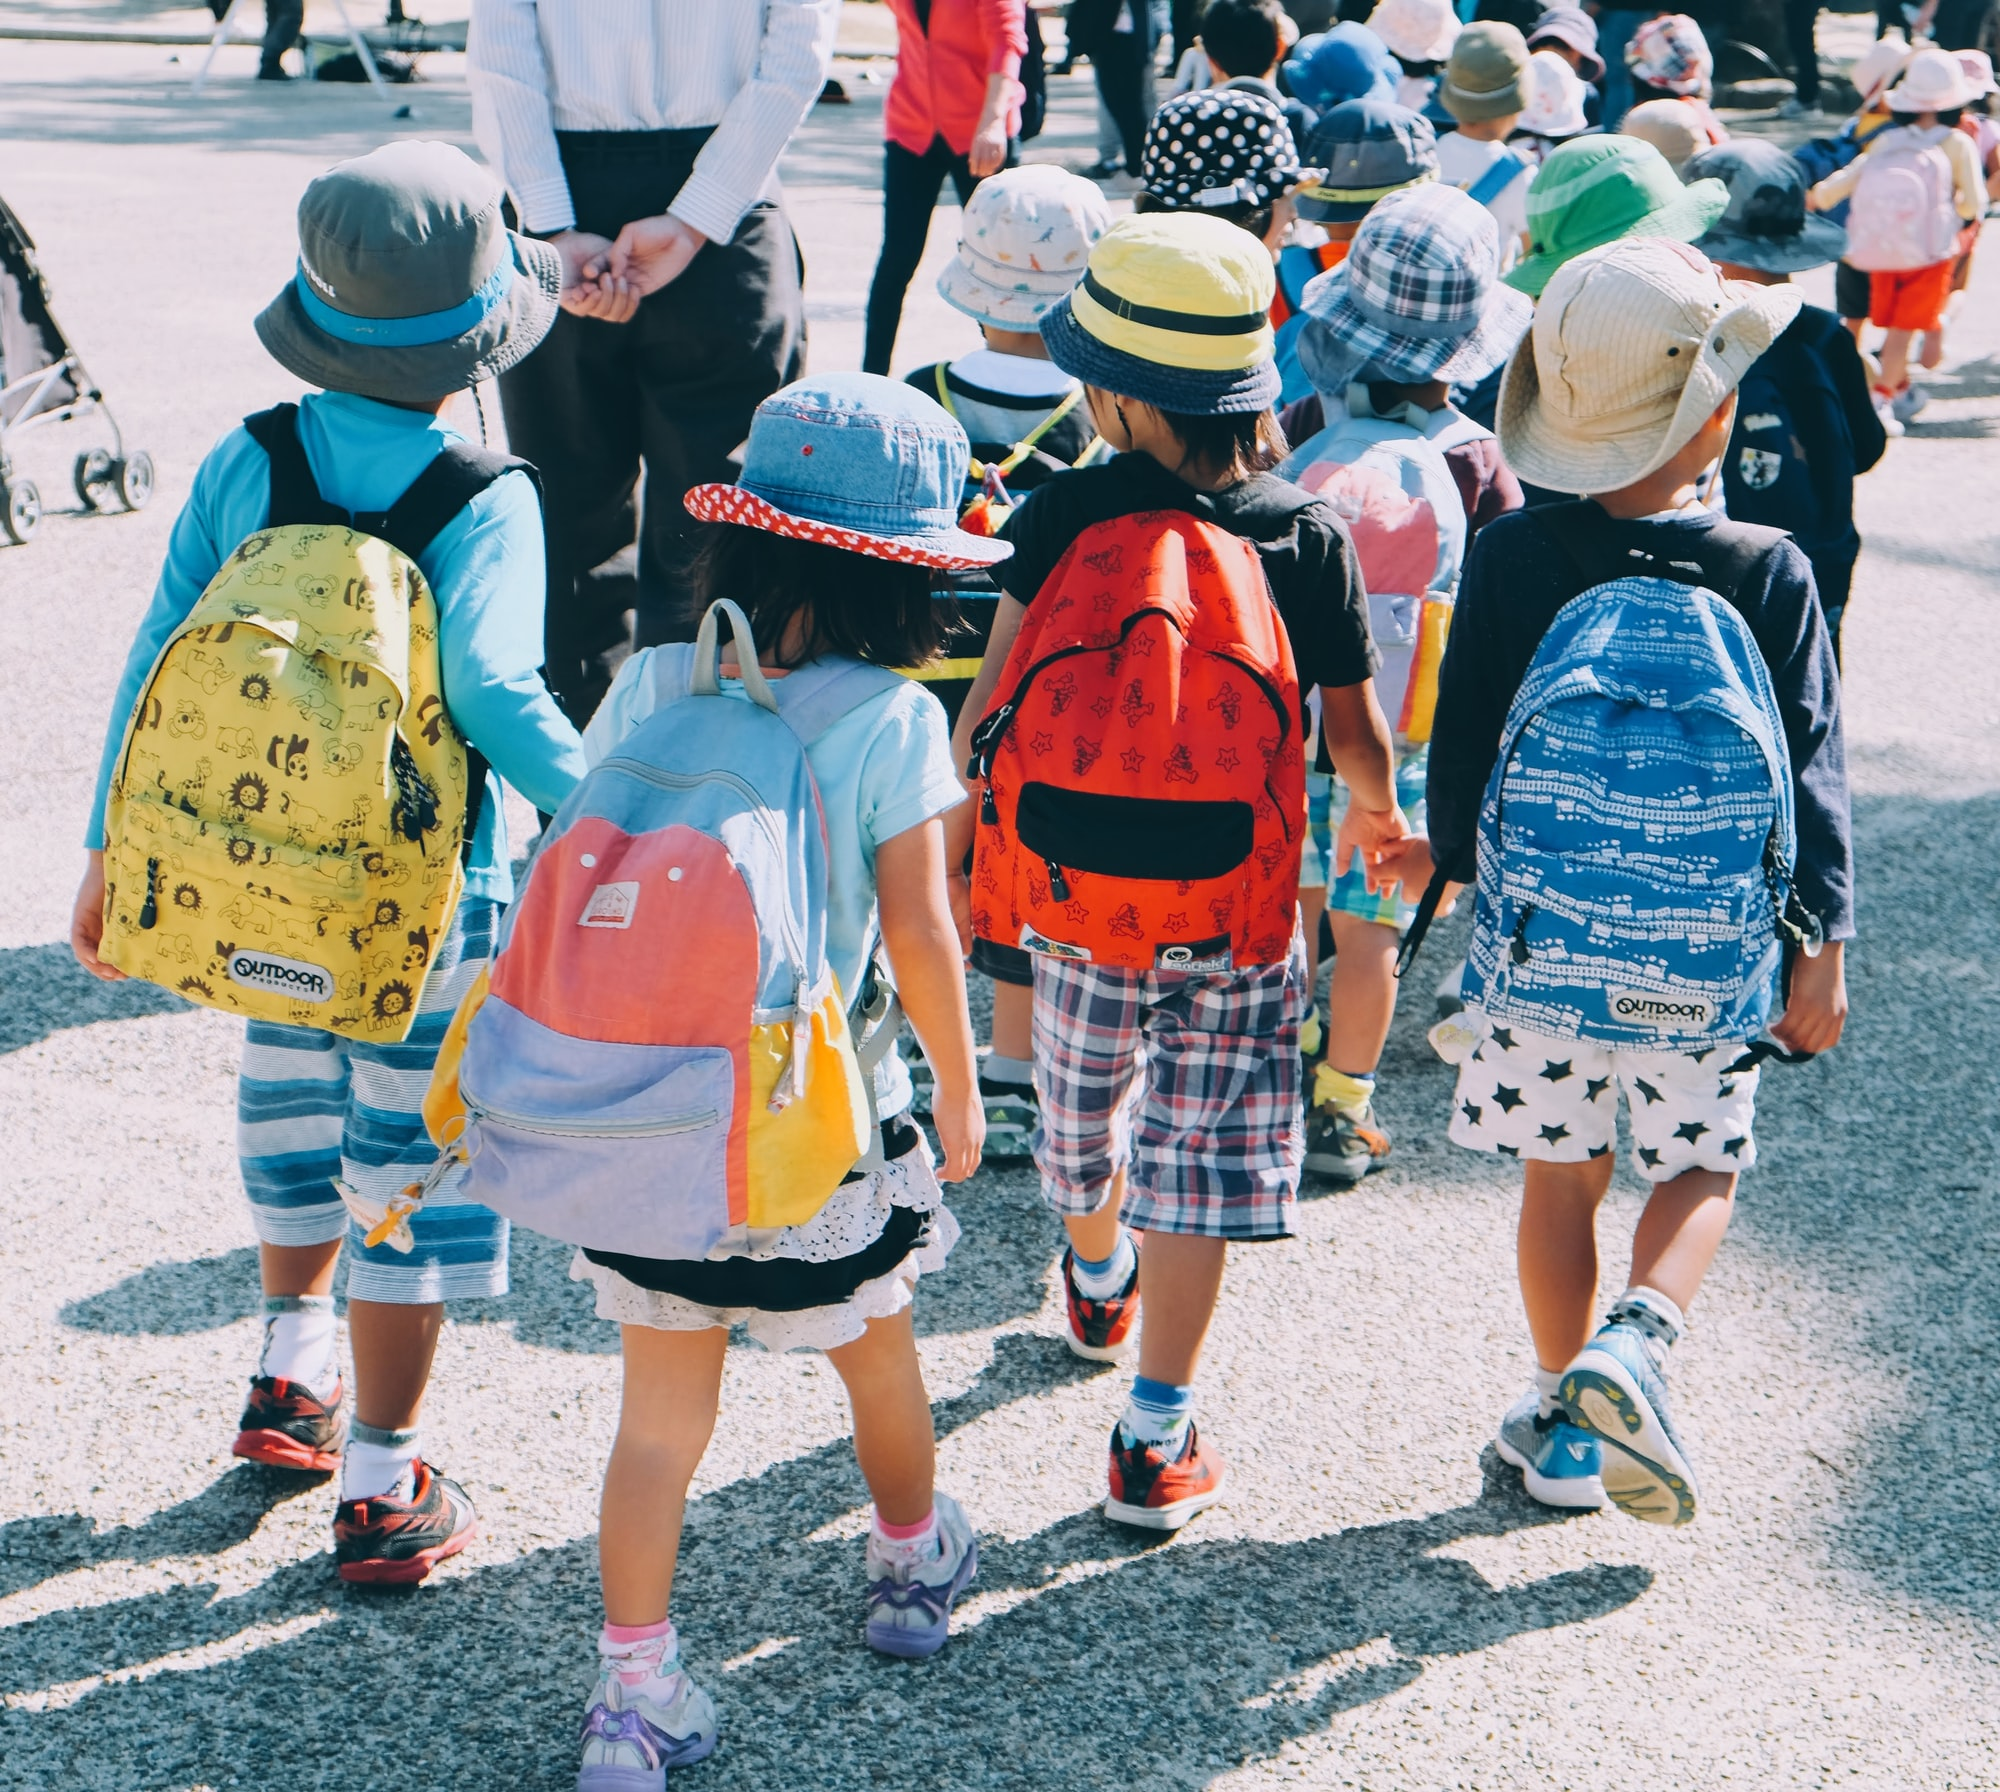 A Fresh Look at Building Student Foundation - How Elementary Education Help